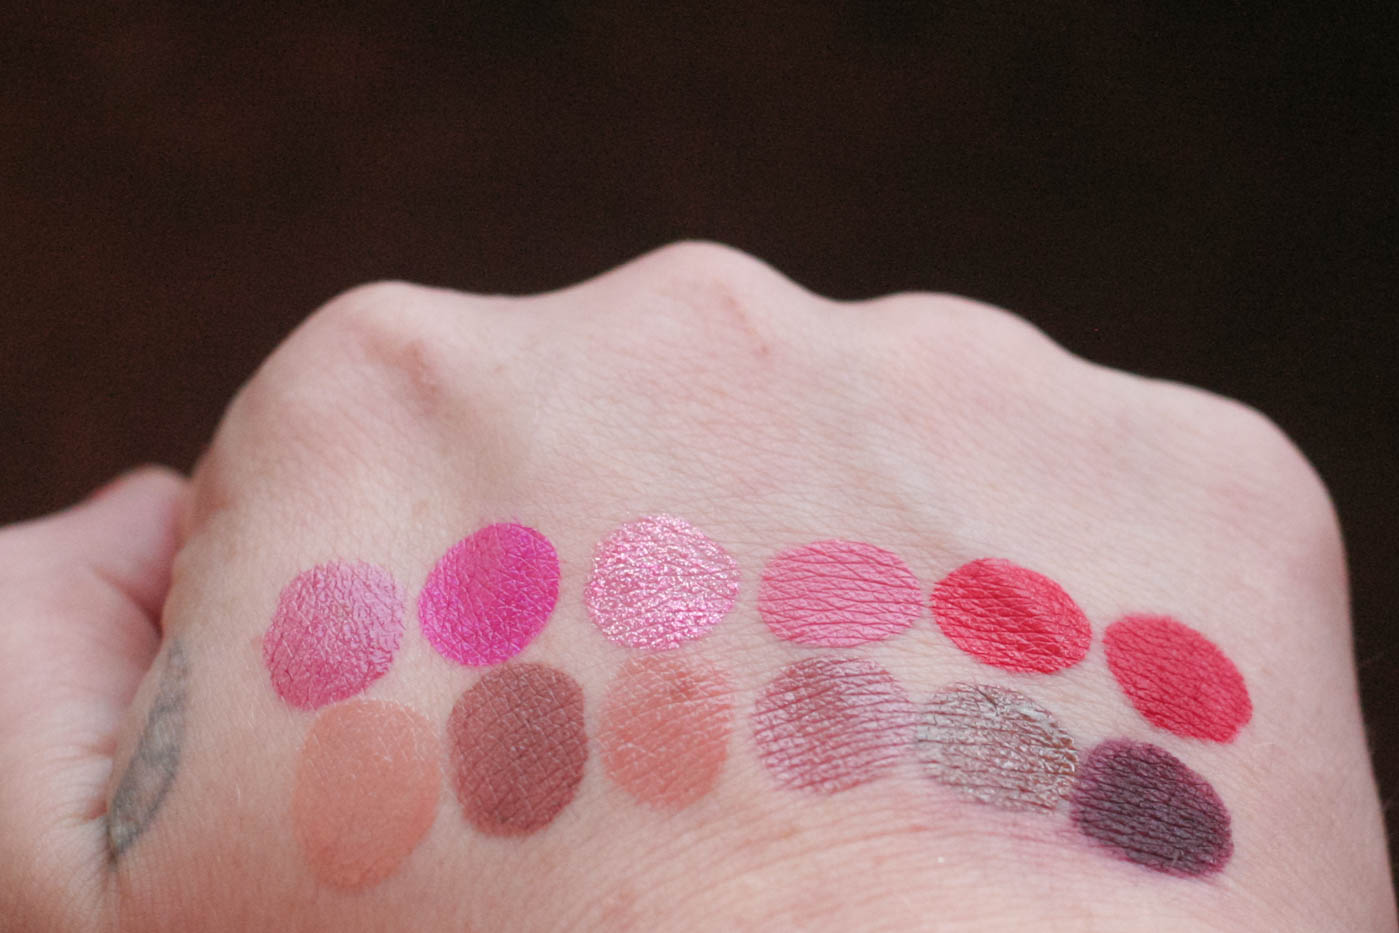 urban decay vice lipstick palette blackmail ulta beauty limited edition fall holiday 2016 gift makeup swatches